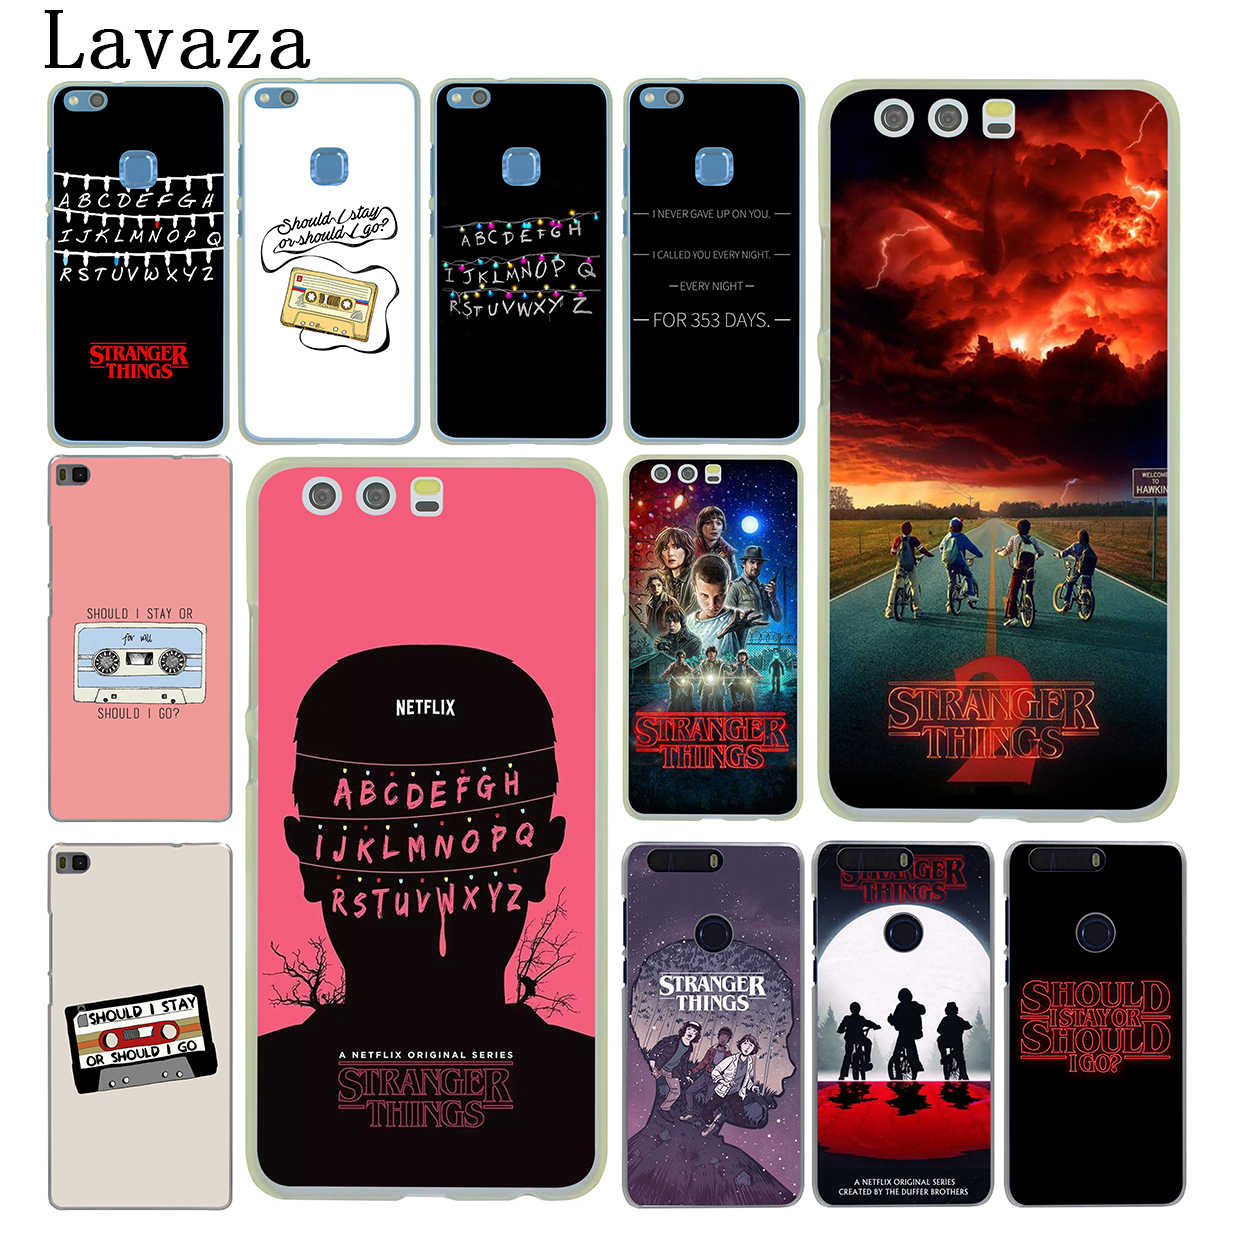 Lavaza should stay go Stranger Things Hard Phone Cover for Huawei P8 P9 P10 P20 P30 Lite Plus P20 P30 Pro P smart 2019 Case